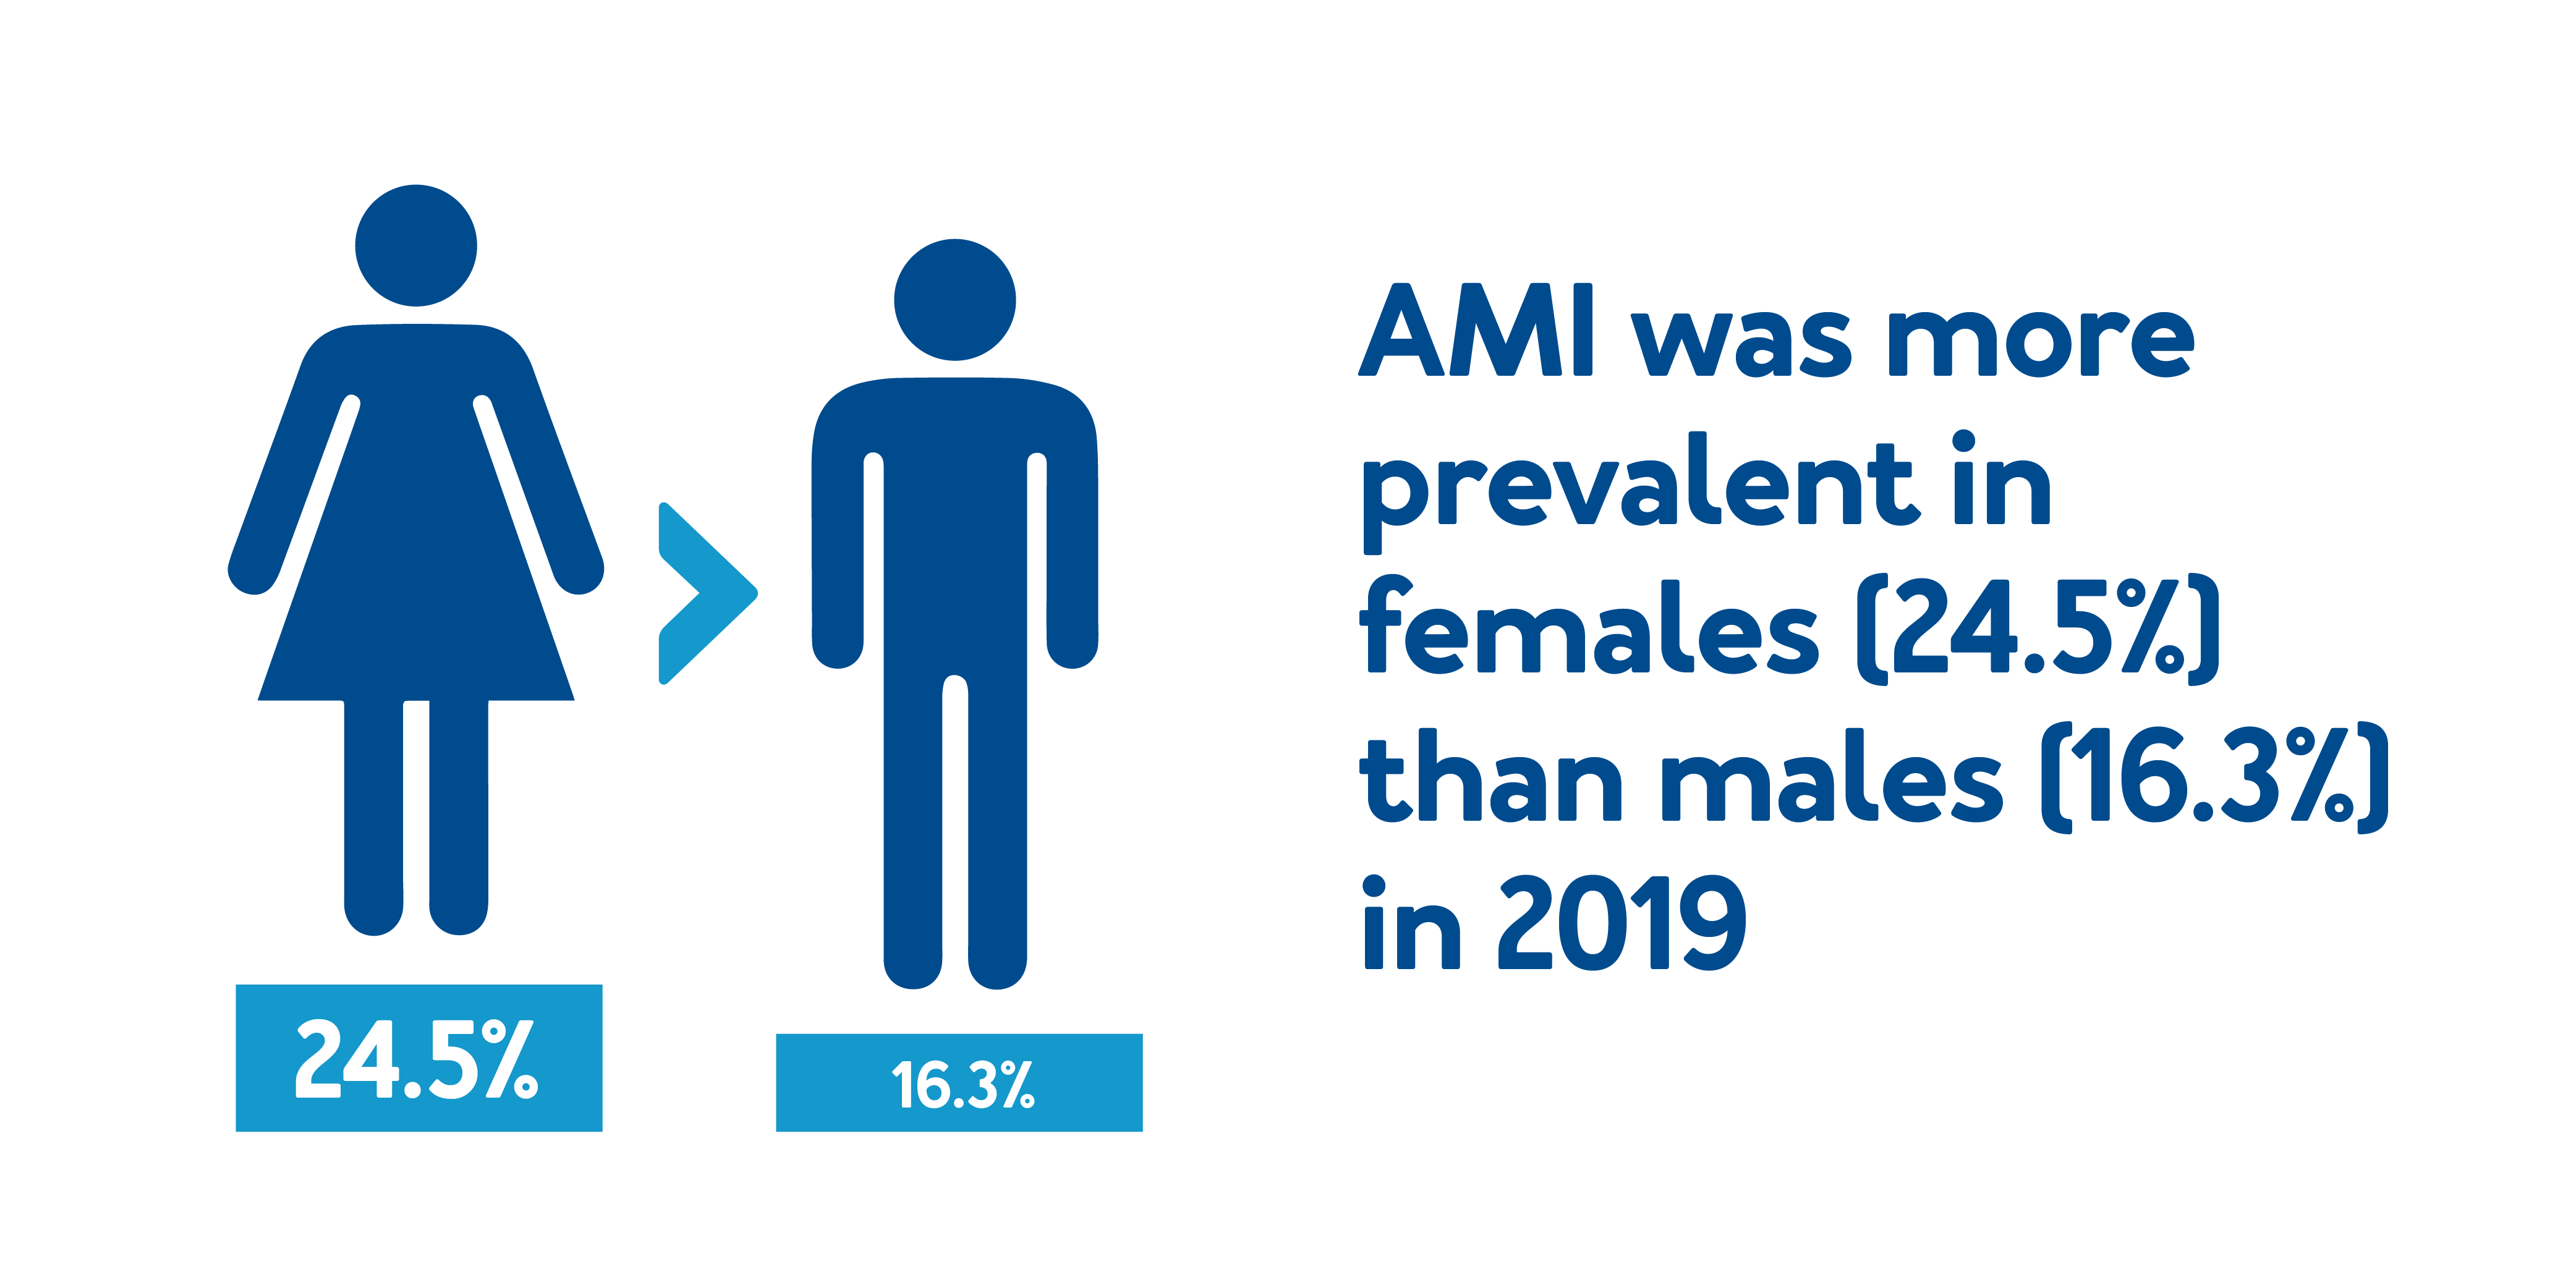 AMI was more prevalent in females (24.5%) than males (16.3%) in 2019